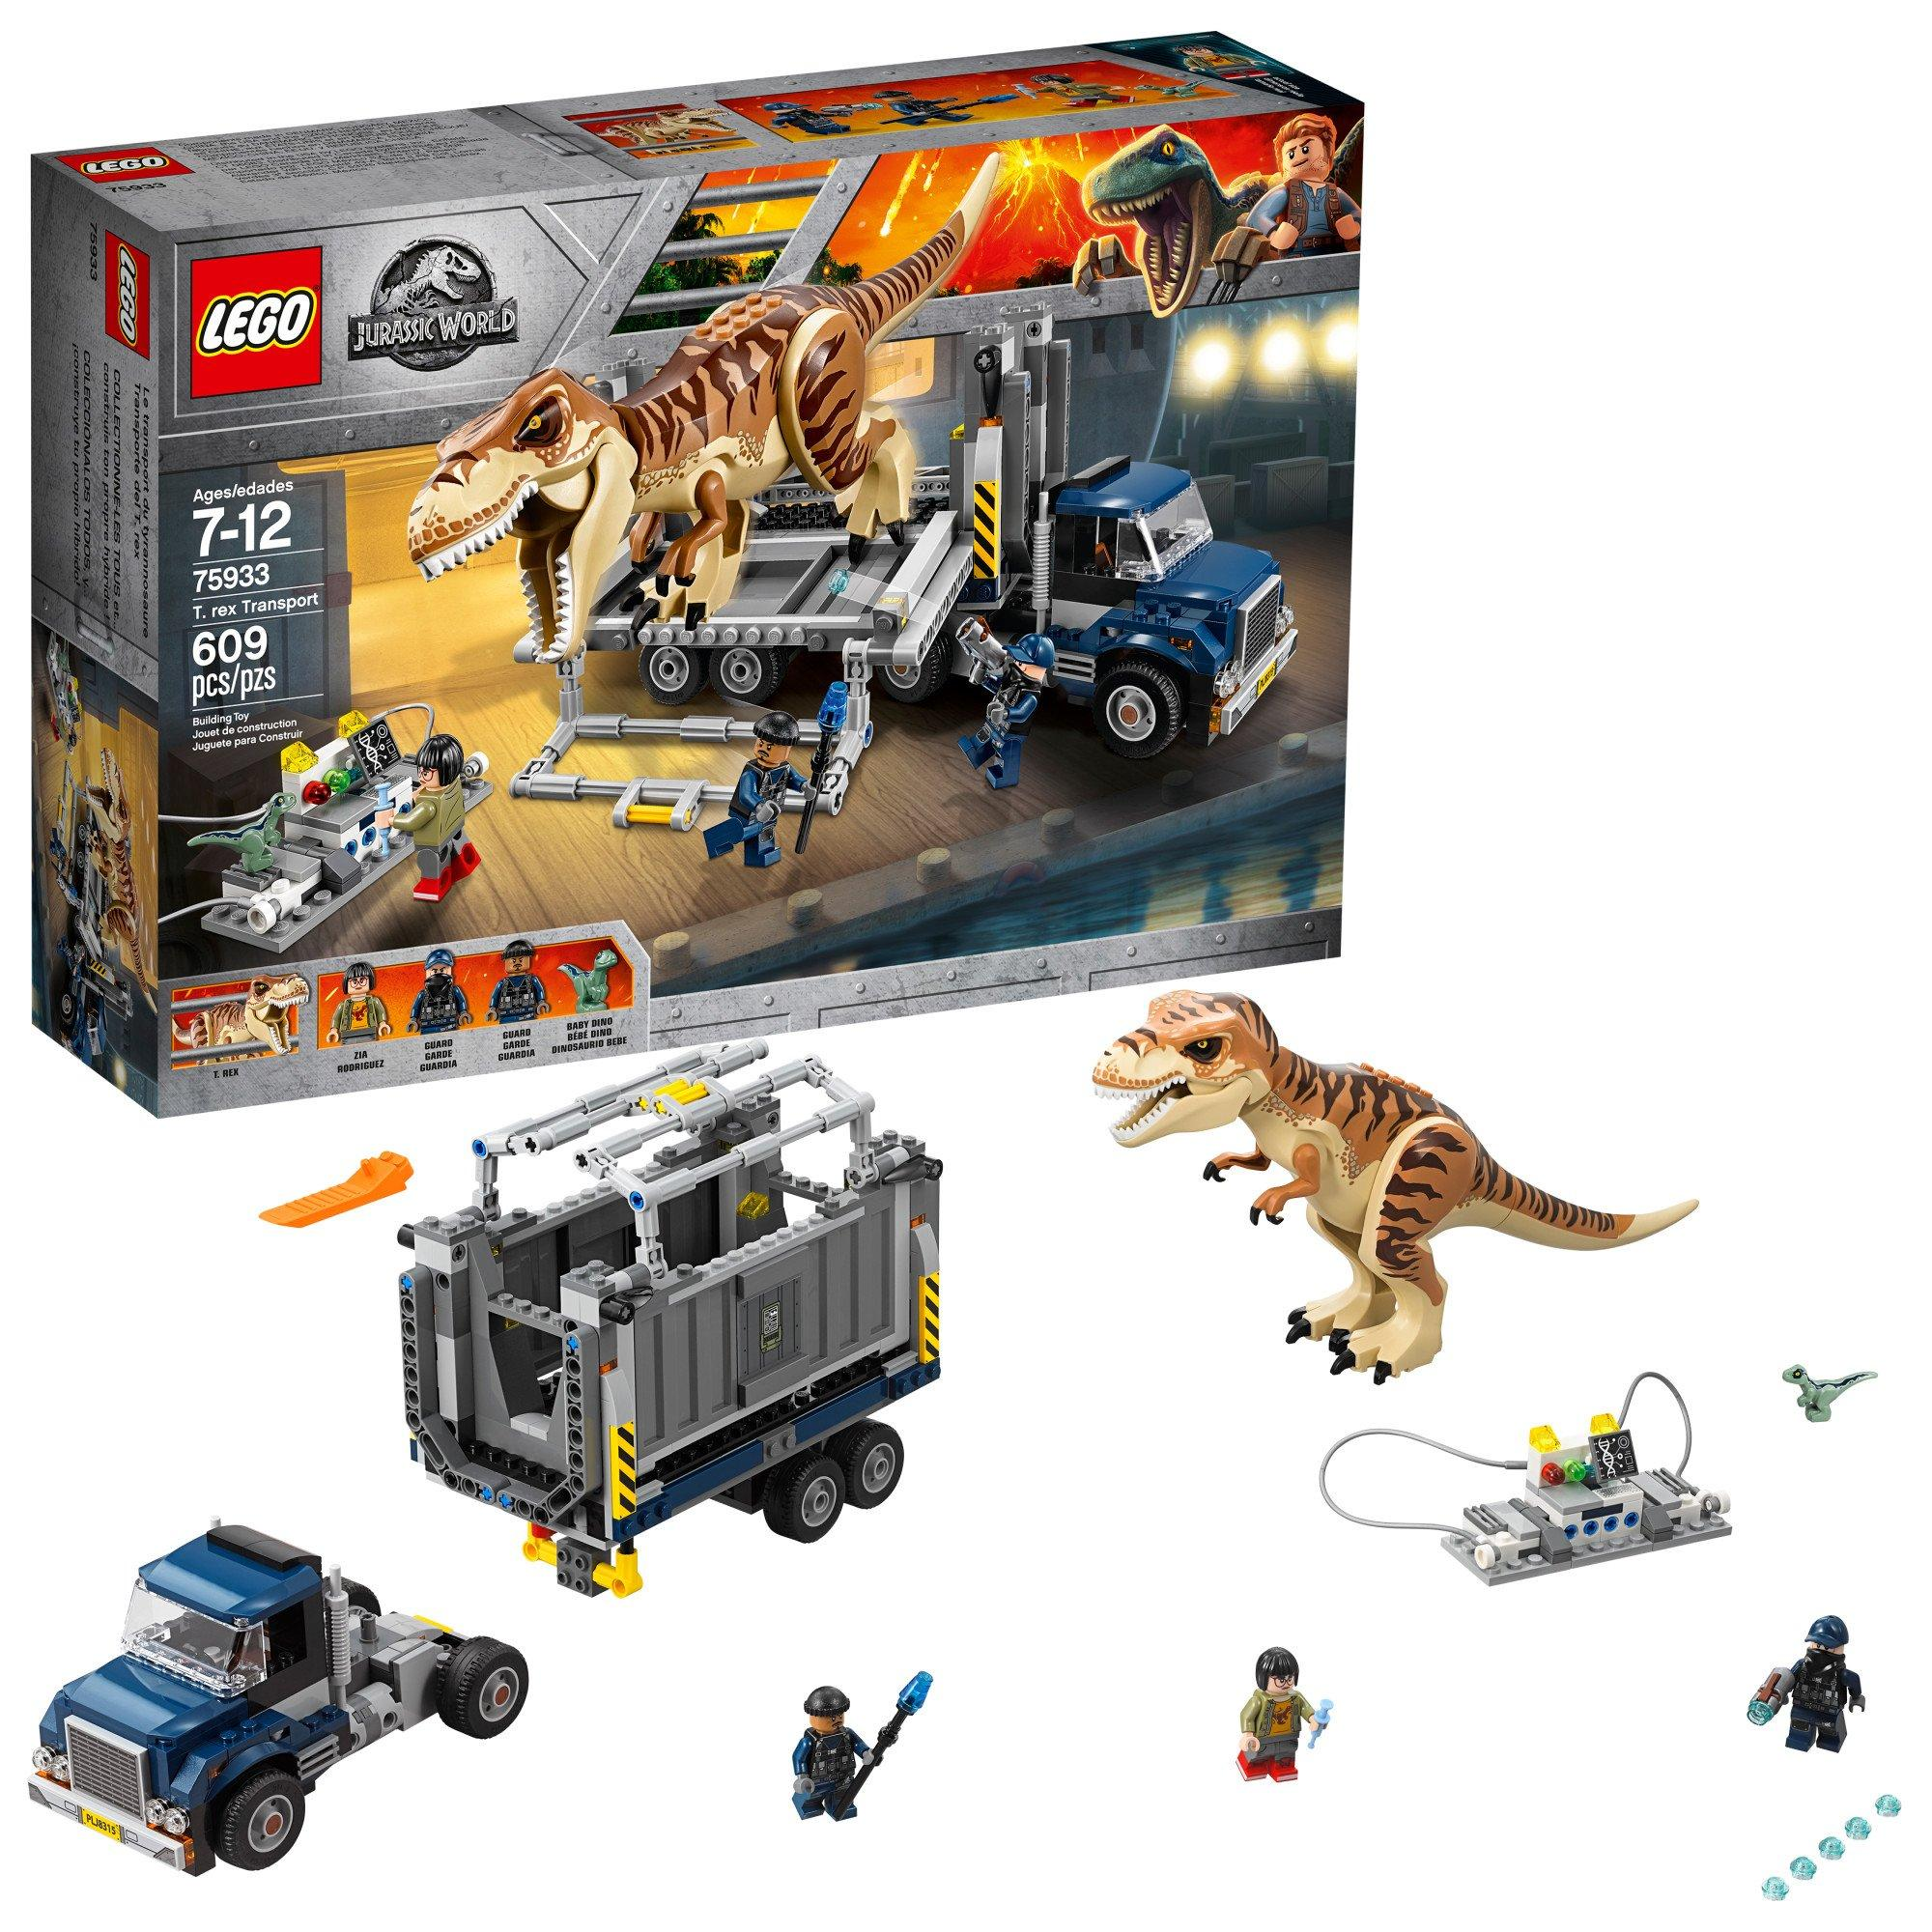 About TRex Jurassic World 75933 Lego Transport Details rWCoedxB